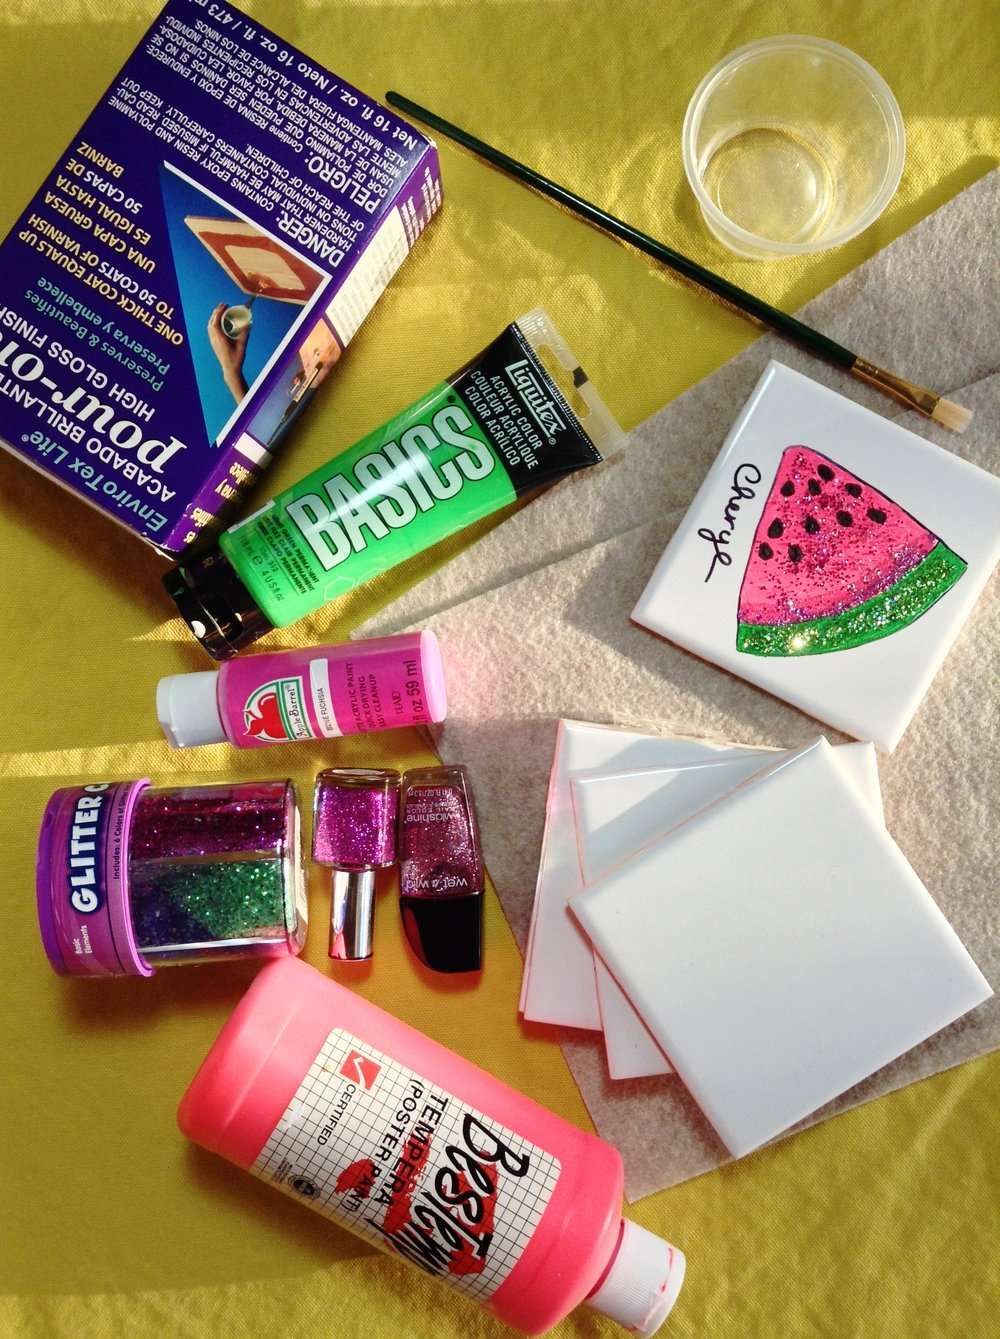 Supplies/ Product List - -Ceramic tiles- Thrift store/Lowes-Paints or scrapbook paper- Michael's Arts & Crafts-Glitter- Glitter Caddy & nail polish-Mod Podge-Sealant- Enviro Tex Lite- Michael's Arts & Crafts-Felt squares- Michael's Arts & Crafts-Black marker- Sharpie